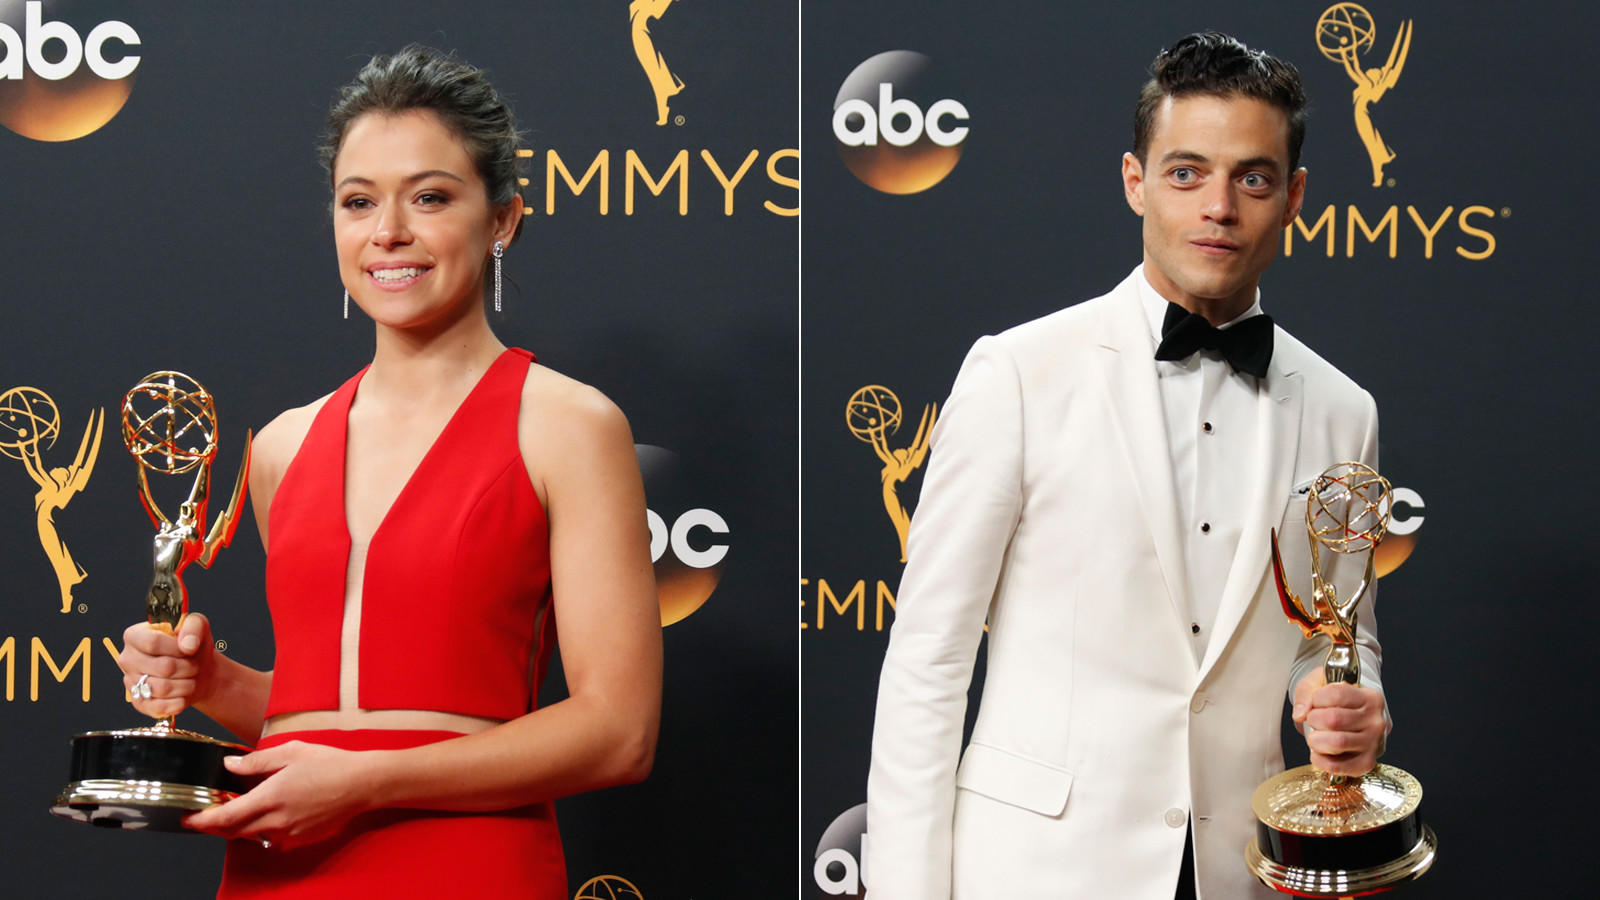 Tatiana Maslany and Rami Malek with their Emmy Awards in 2016. (Allen J. Schaben / Los Angeles Times)